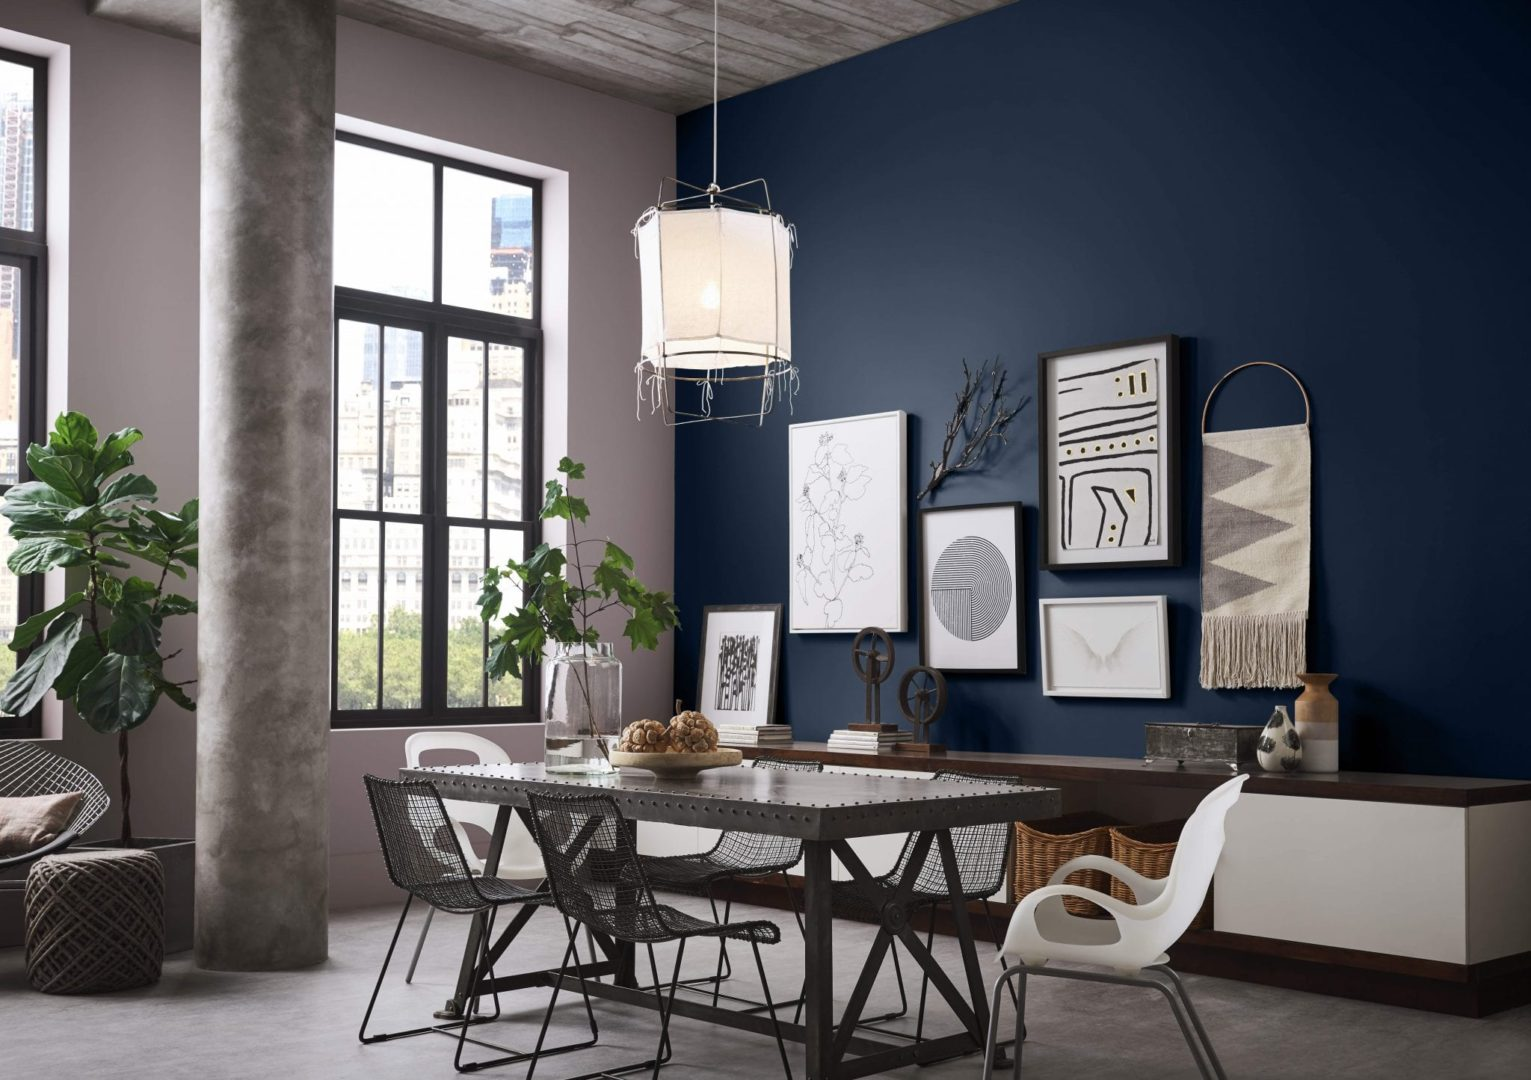 Sherwin Williams January 2020 Color Of The Month Is Naval